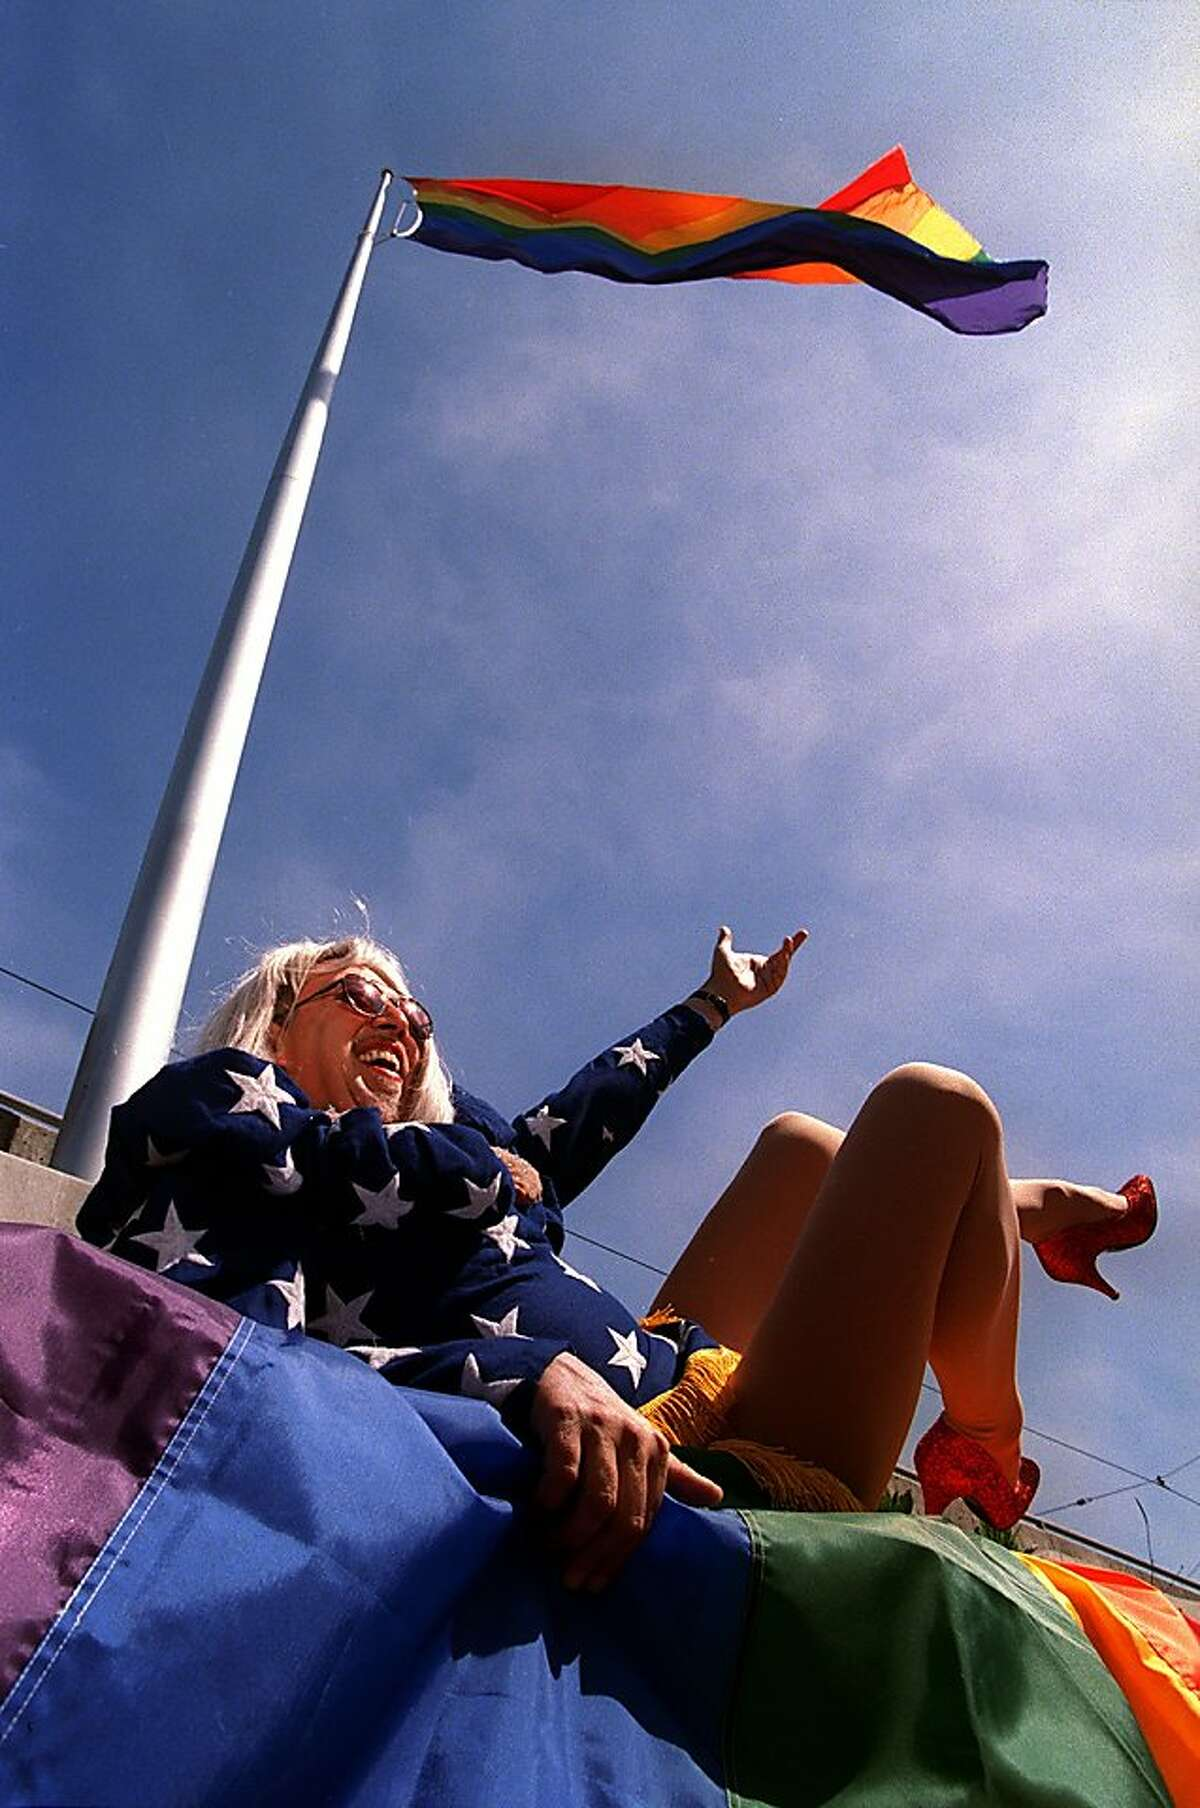 """DRAG/C/23JUN99/MN/RW Gilbert Baker, otherwise known as the """"Gay Betsy Ross,"""" sits under a giant rainbow flag, that symbolizes gay pride, dressed in drag in the Castro neighborhood in San Francisco. BY ROBIN WEINER/THE CHRONICLE."""